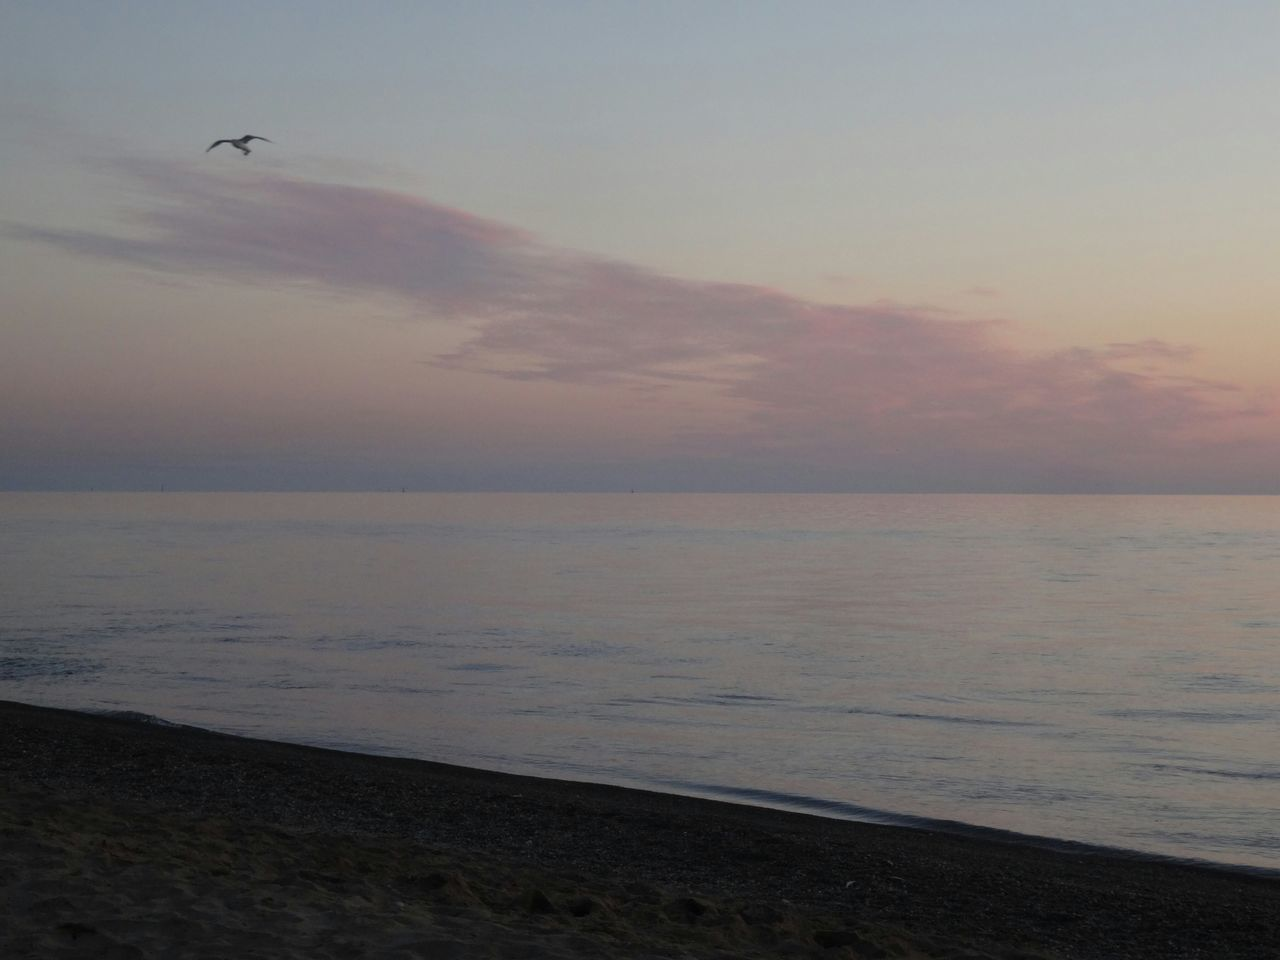 sea, water, beauty in nature, nature, horizon over water, scenics, tranquil scene, bird, flying, beach, sunset, tranquility, outdoors, sky, animal themes, animals in the wild, one animal, no people, idyllic, mid-air, animal wildlife, clear sky, day, spread wings